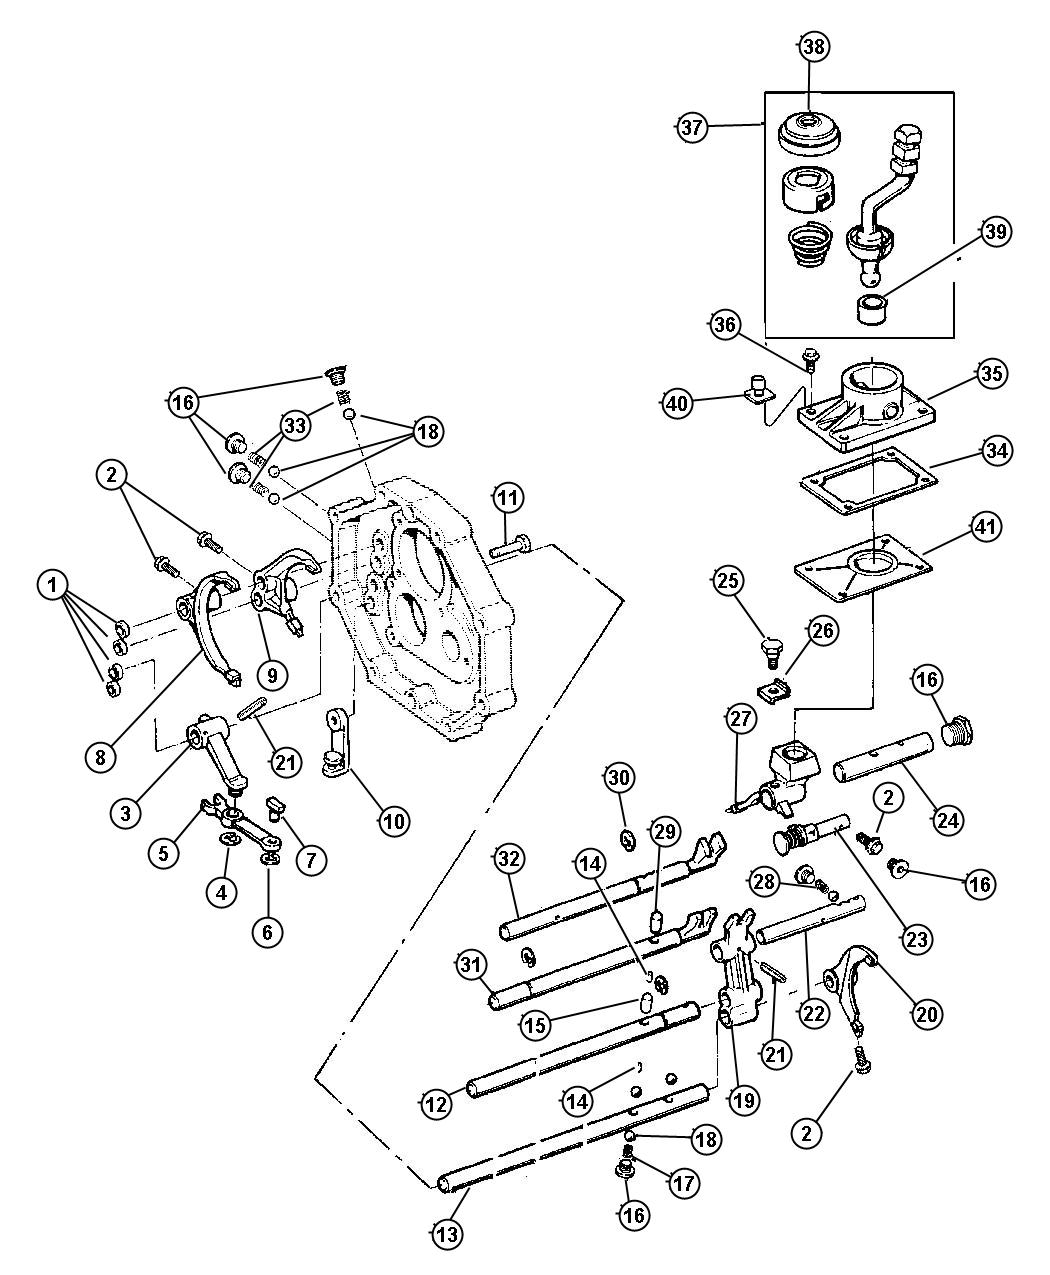 1986 together with 1967 Gto Windshield Wiring as well 1z0ed 2008 Dodge Avenger 3 5 Need Change Back Plugs Cant besides P 0900c1528007f453 moreover 1gqy1 Crank Position Sensor Located 2005 Magnum. on dodge 5 9 engine vacuum diagram